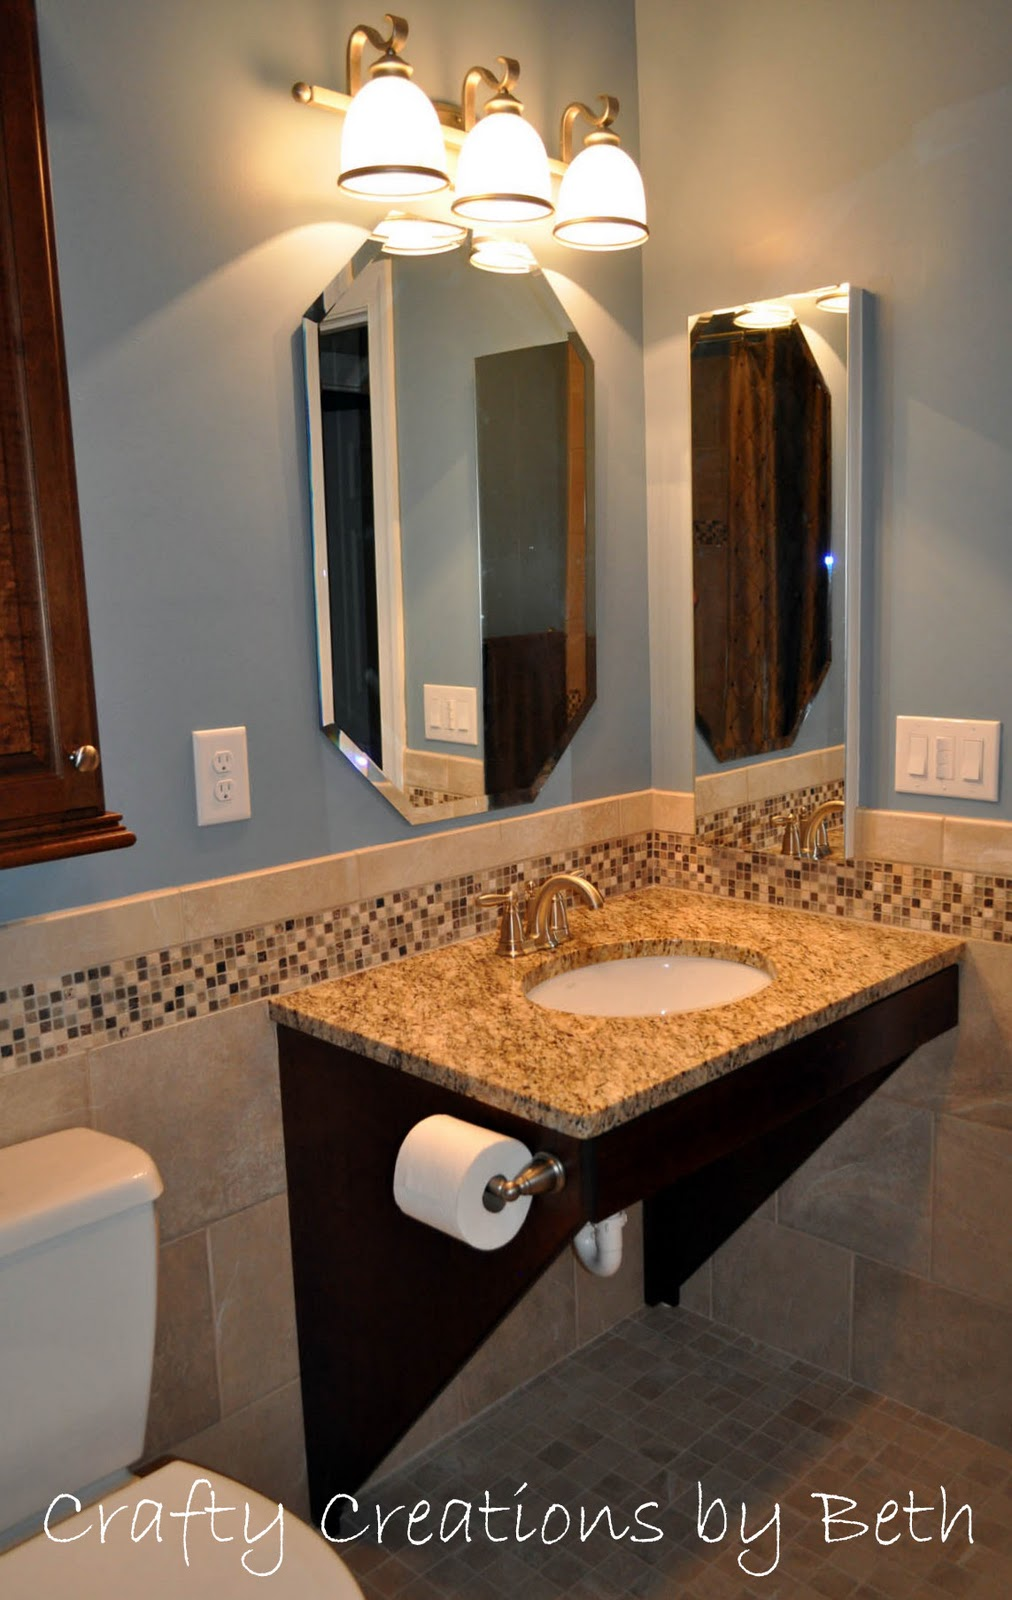 Wheelchair accessible bathroom remodel sonya hamilton designs for Wheelchair accessible sink bathroom